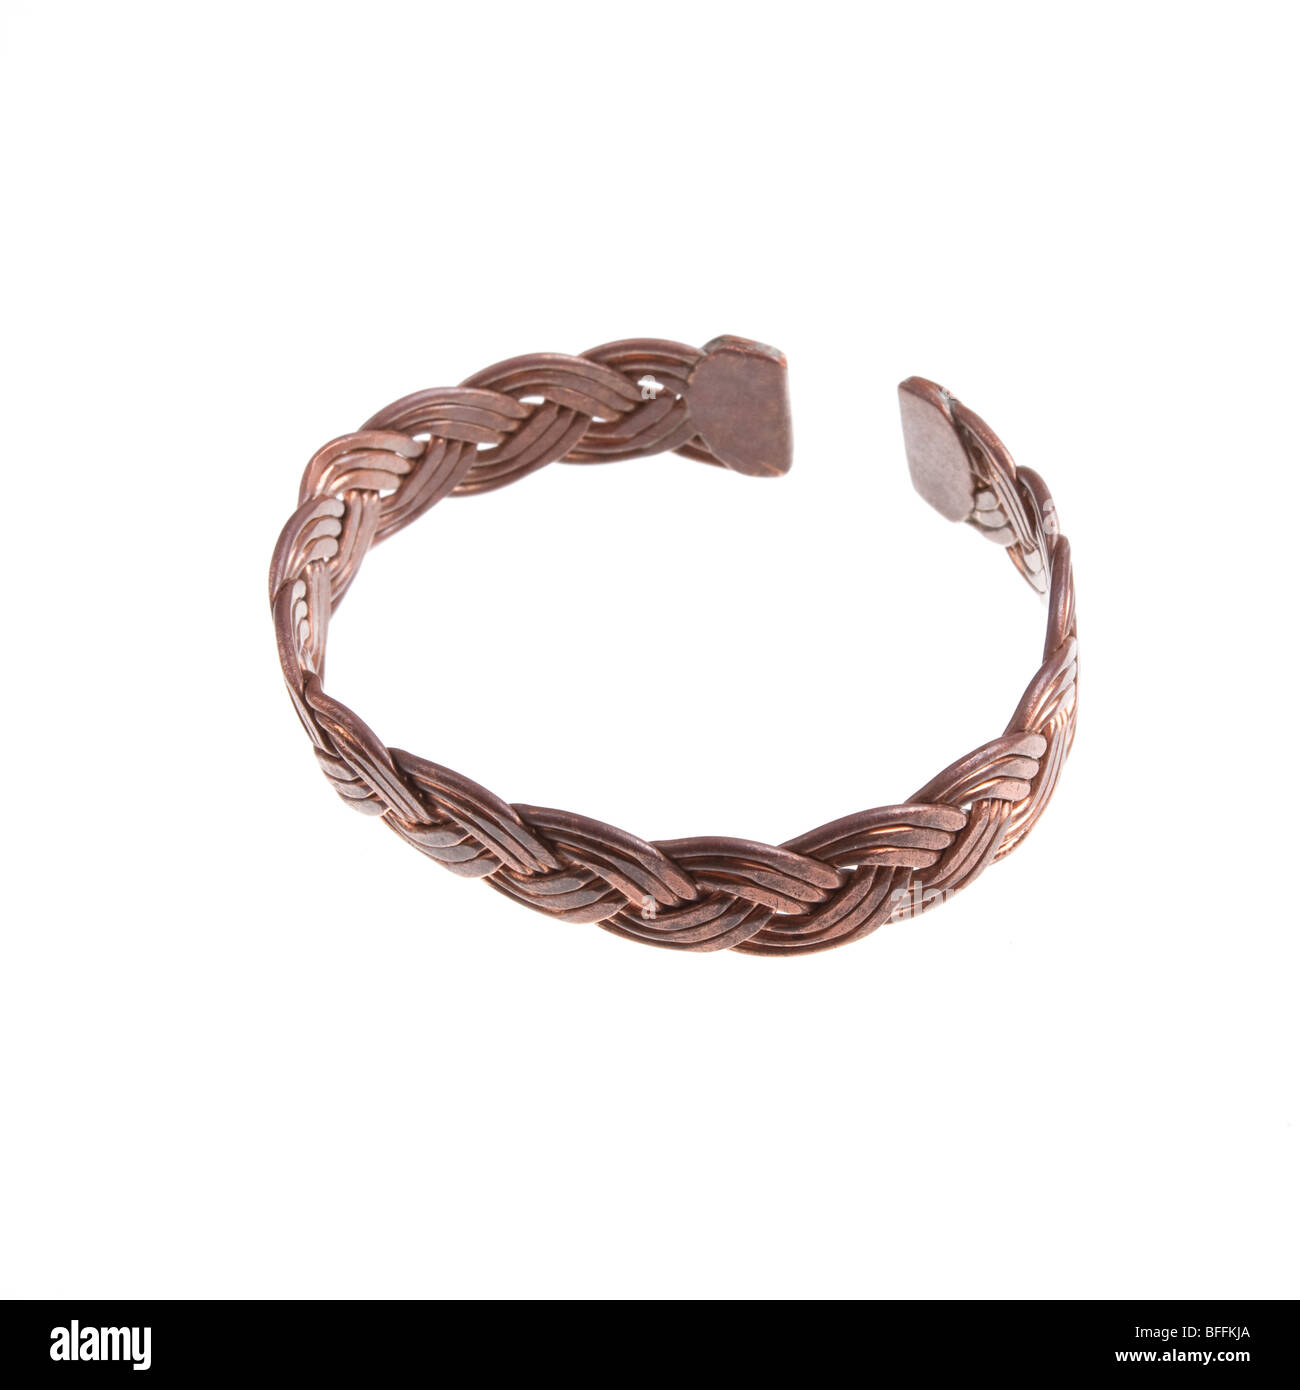 Made Copper Stock Photos Images Alamy Circuit Board Cuff Bracelet Hand From Twisted And Hammered Wire Isolated Against White Background